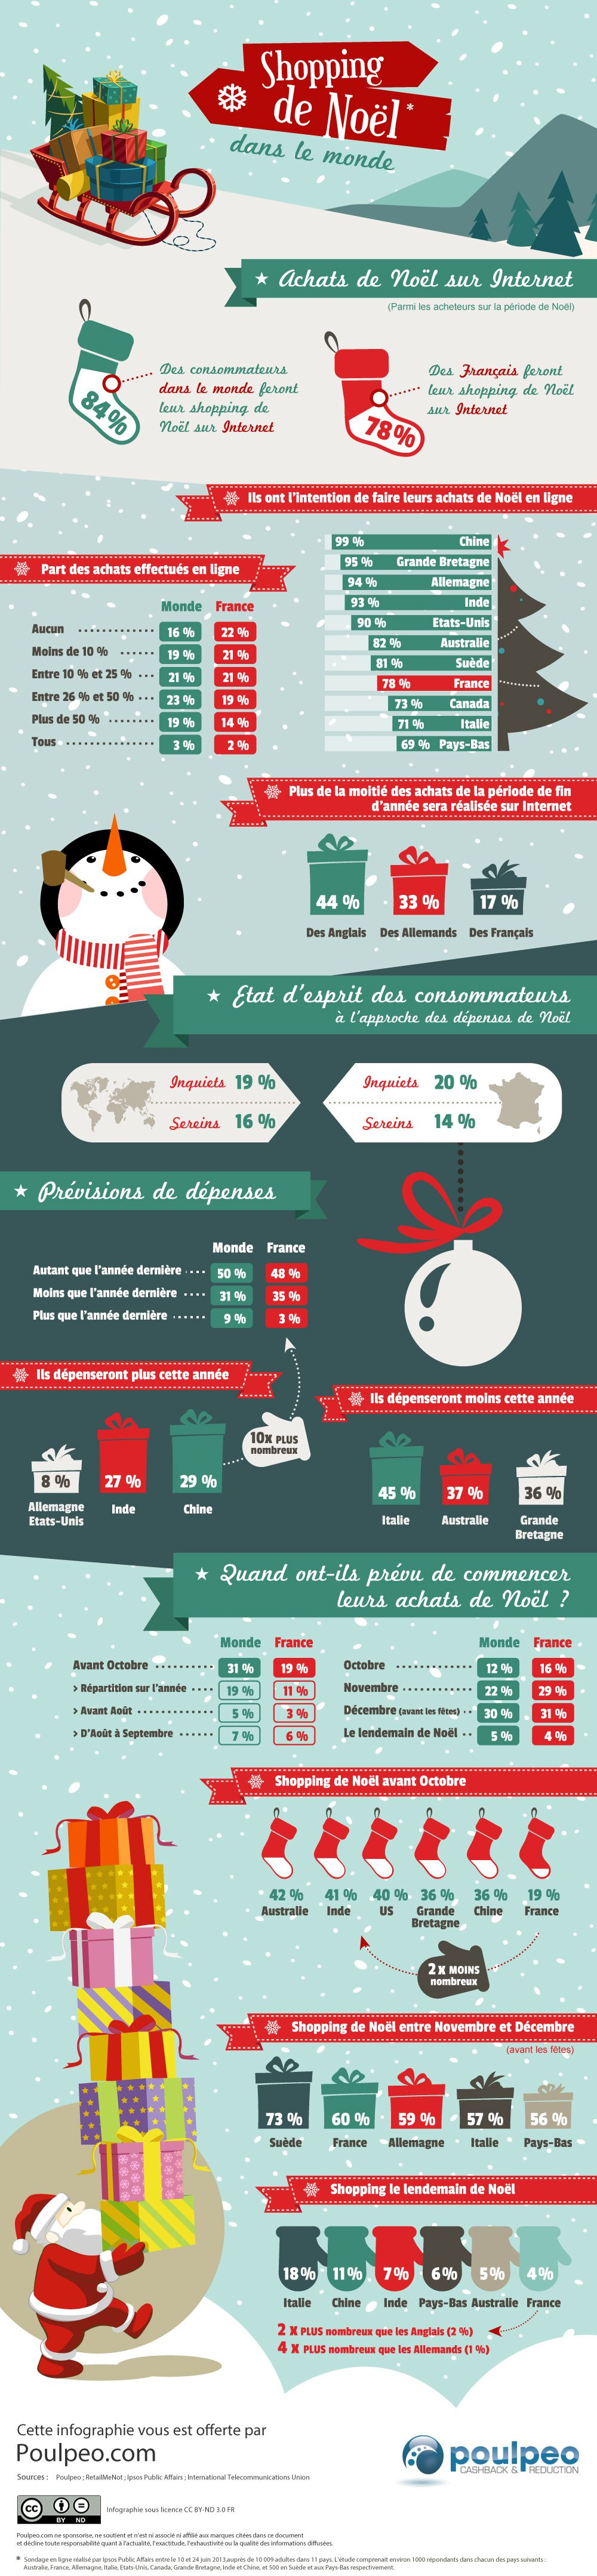 infographie shopping de no l dans le monde french. Black Bedroom Furniture Sets. Home Design Ideas